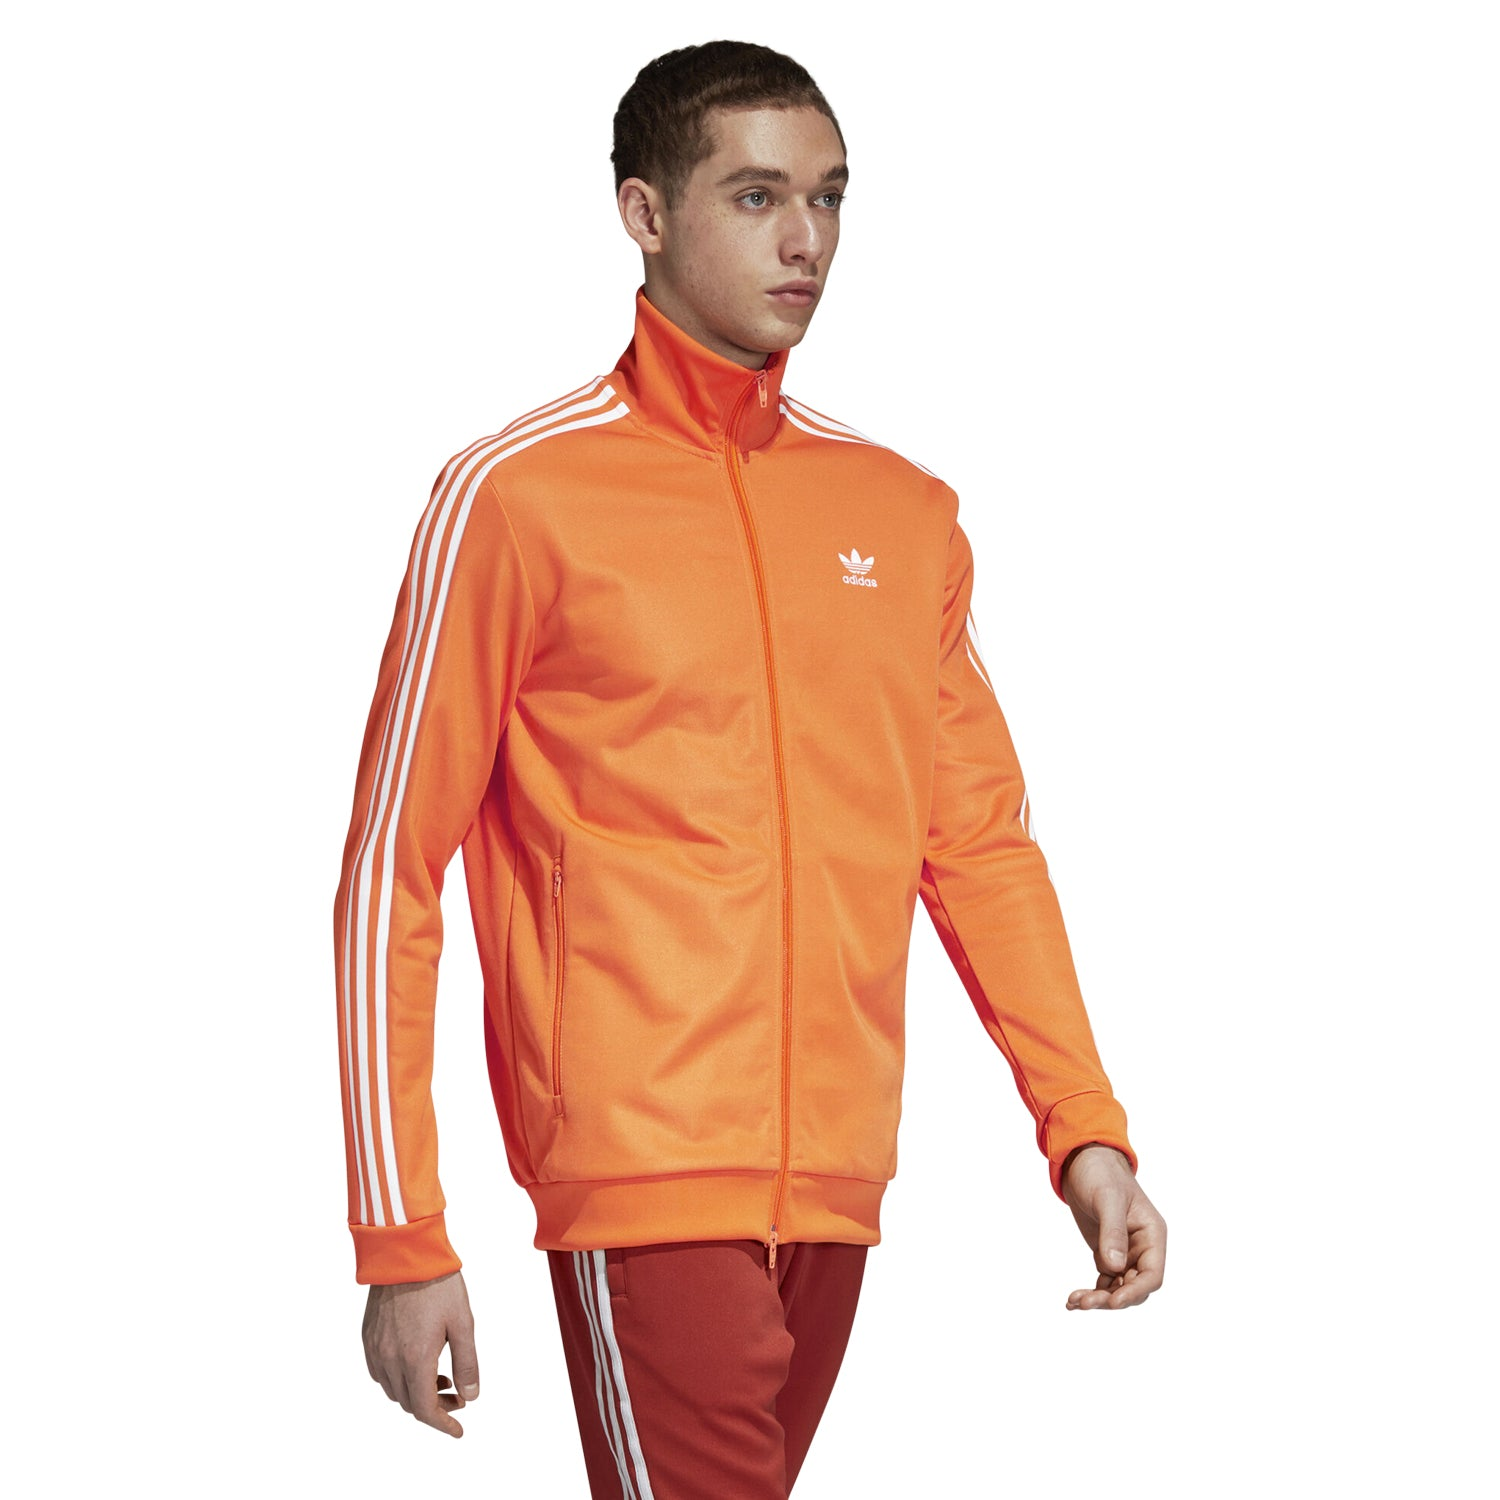 adidas Originals Men's Beckenbauer Track Jacket Orange